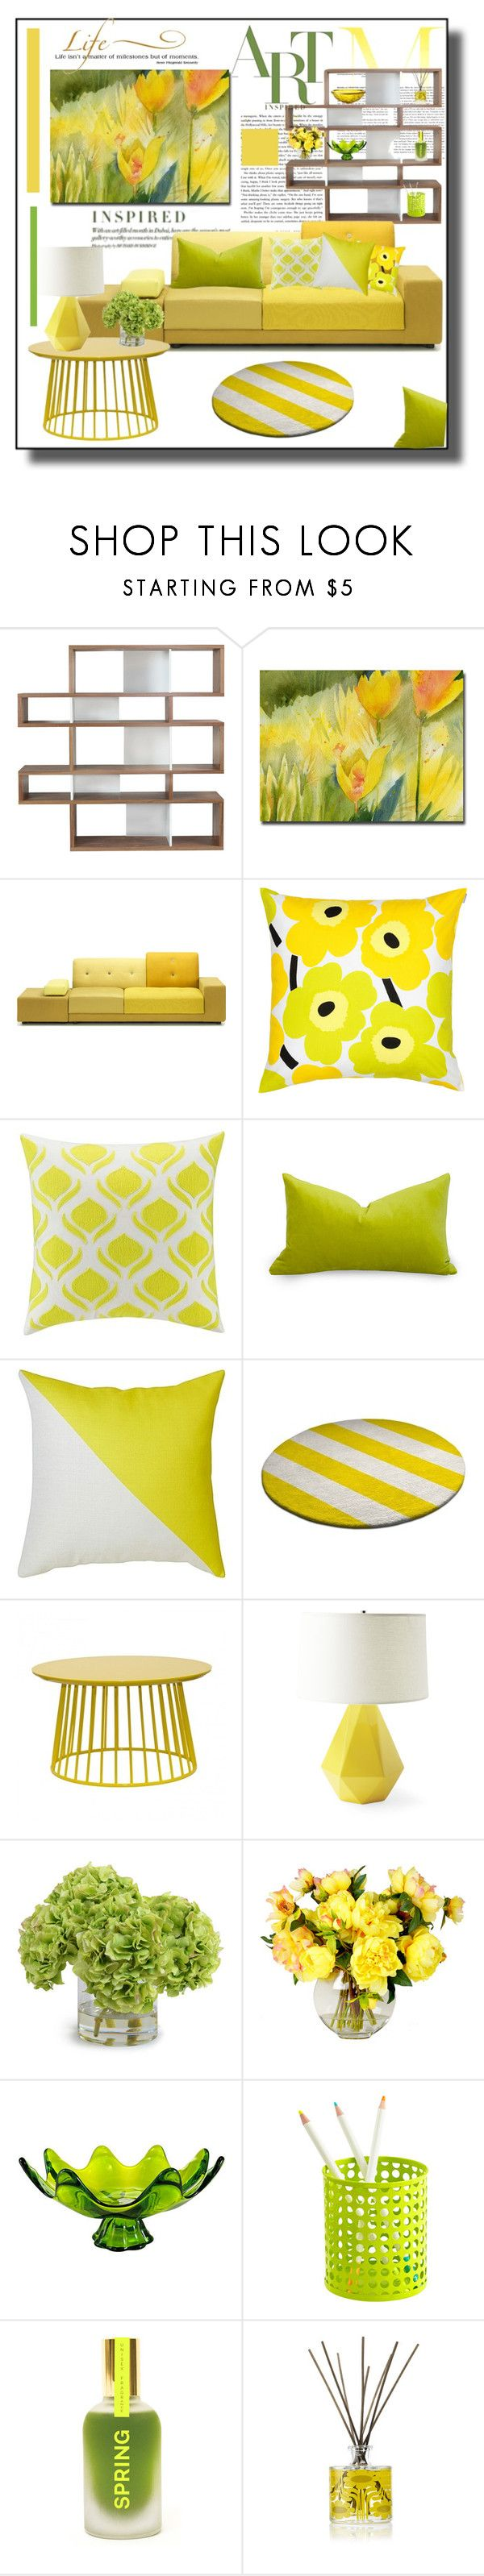 """""""Yellow"""" by barbara-gennari ❤ liked on Polyvore featuring interior, interiors, interior design, home, home decor, interior decorating, TemaHome, Polder, Marimekko and KAS Australia"""